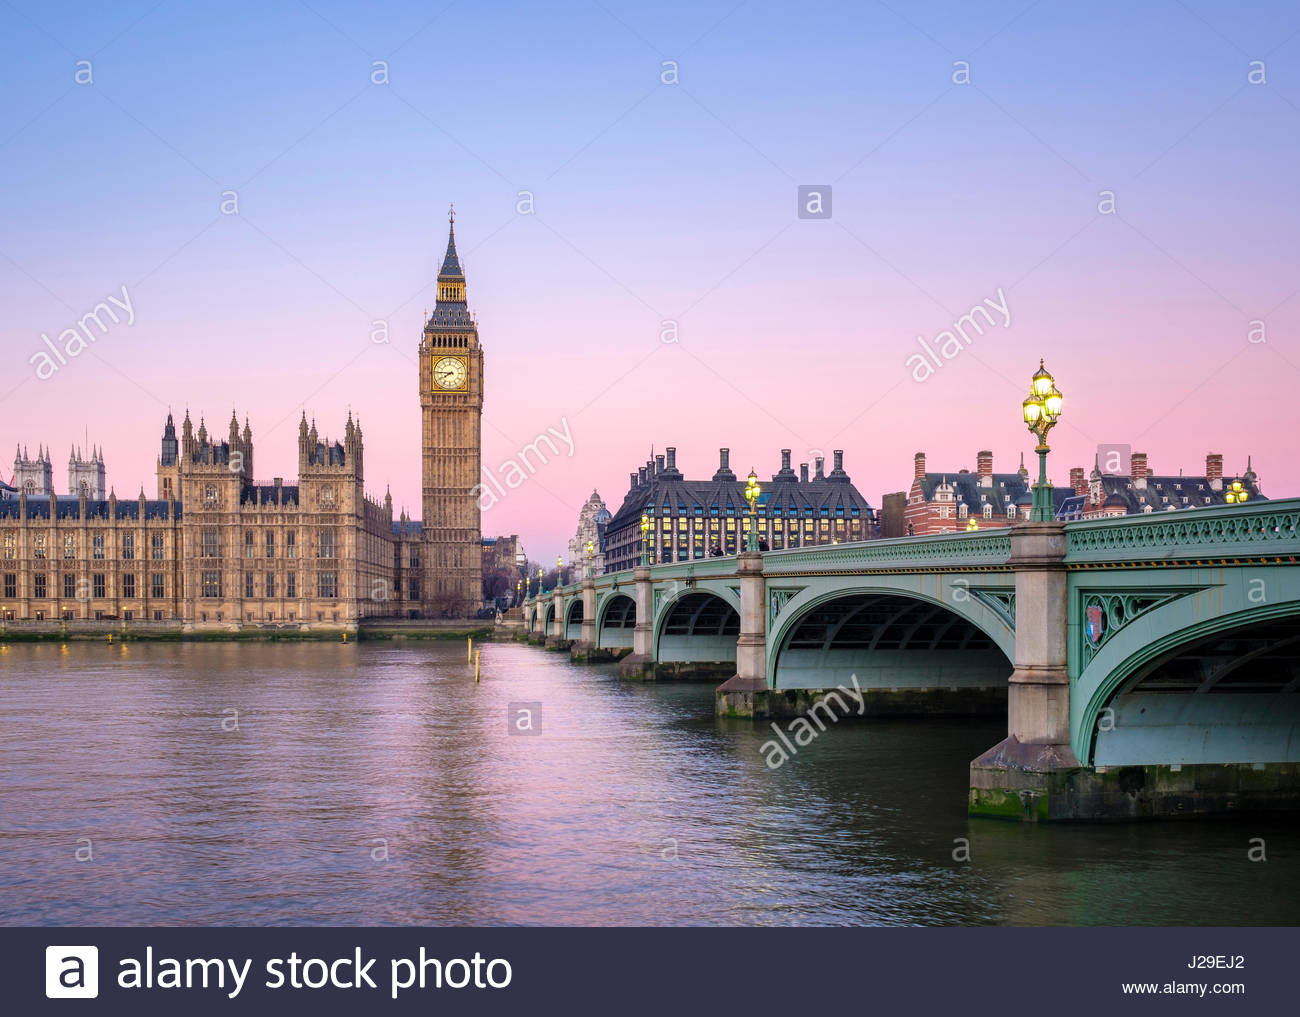 United Kingdom, England, London. Westminster Bridge, Palace of Westminster and the clock tower of Big Ben (Elizabeth - Stock Image